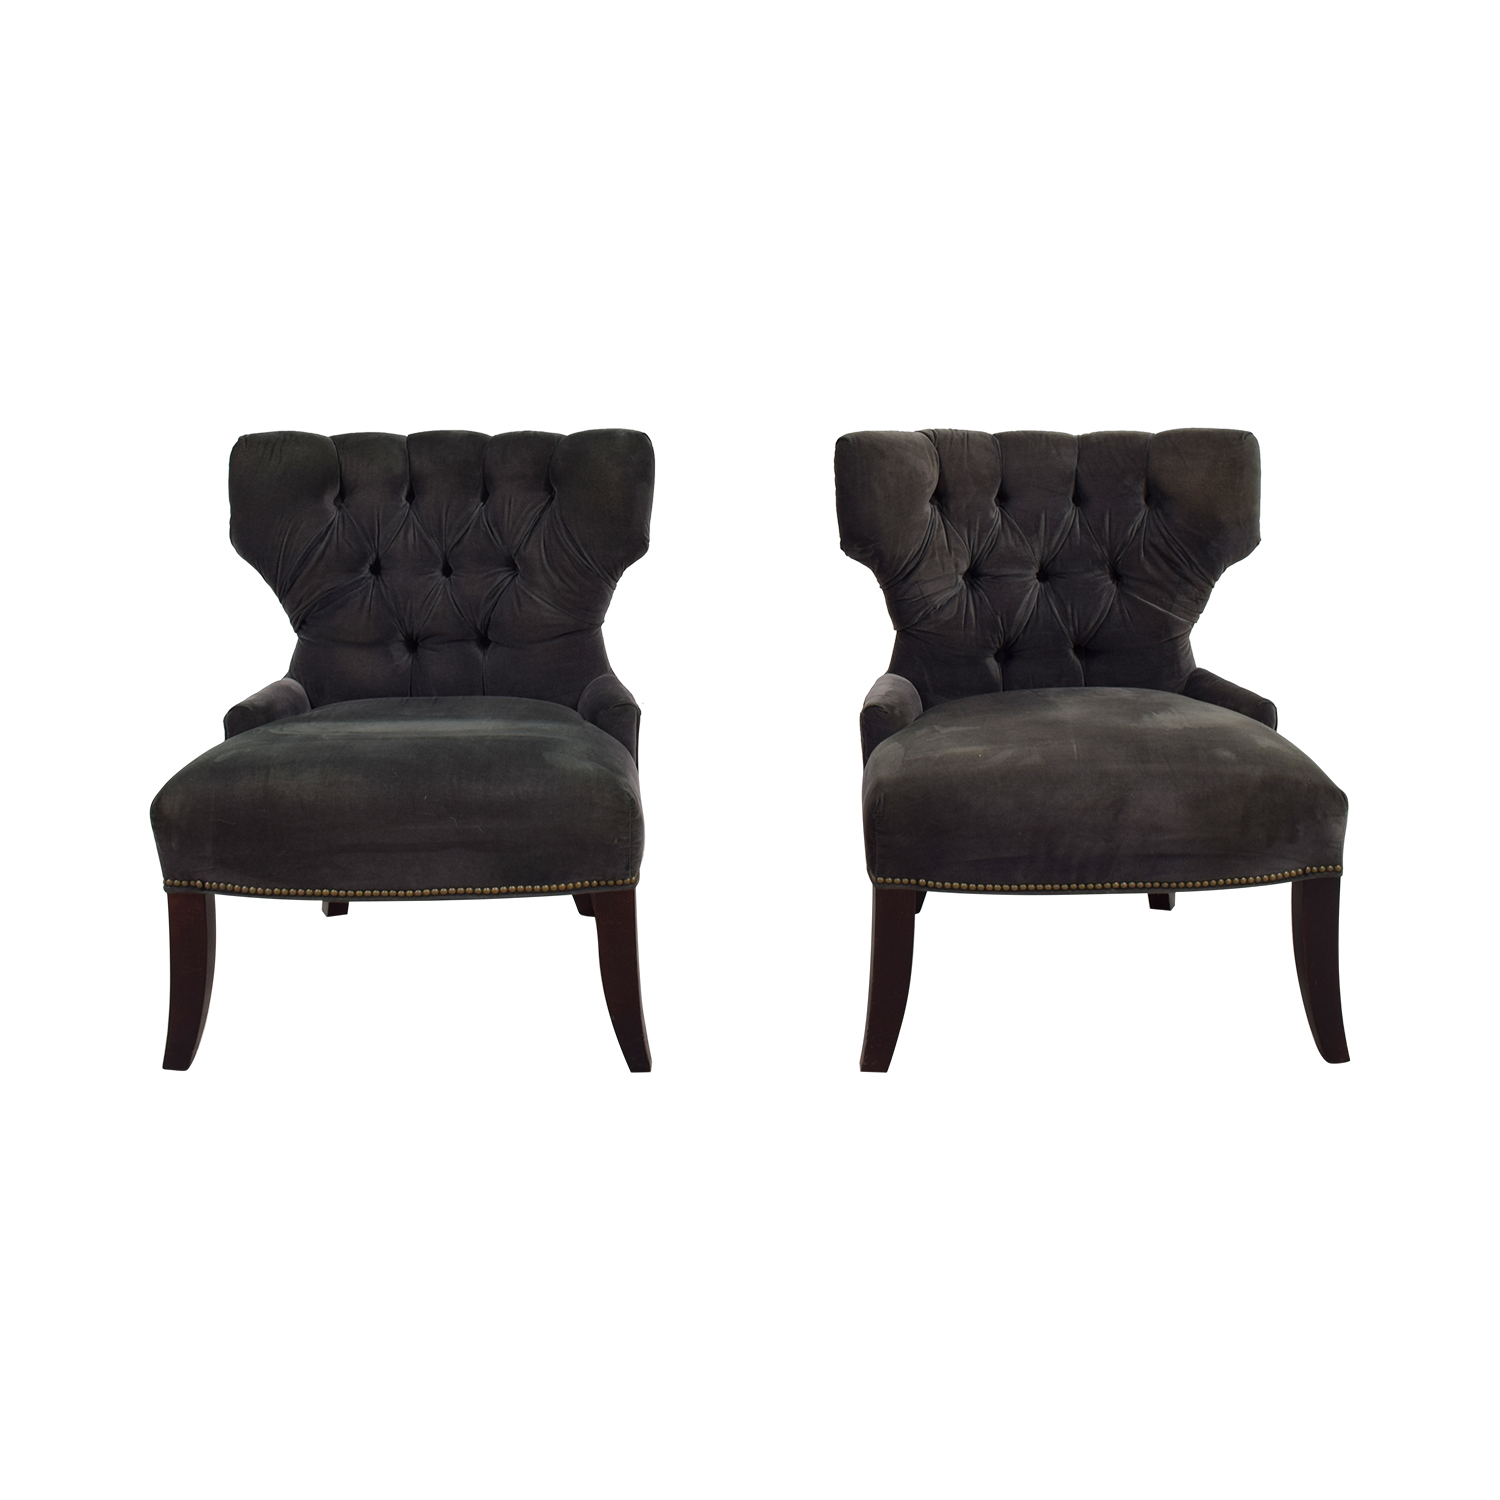 Room & Board Room & Board Grey Velvet Accent Chairs dimensions